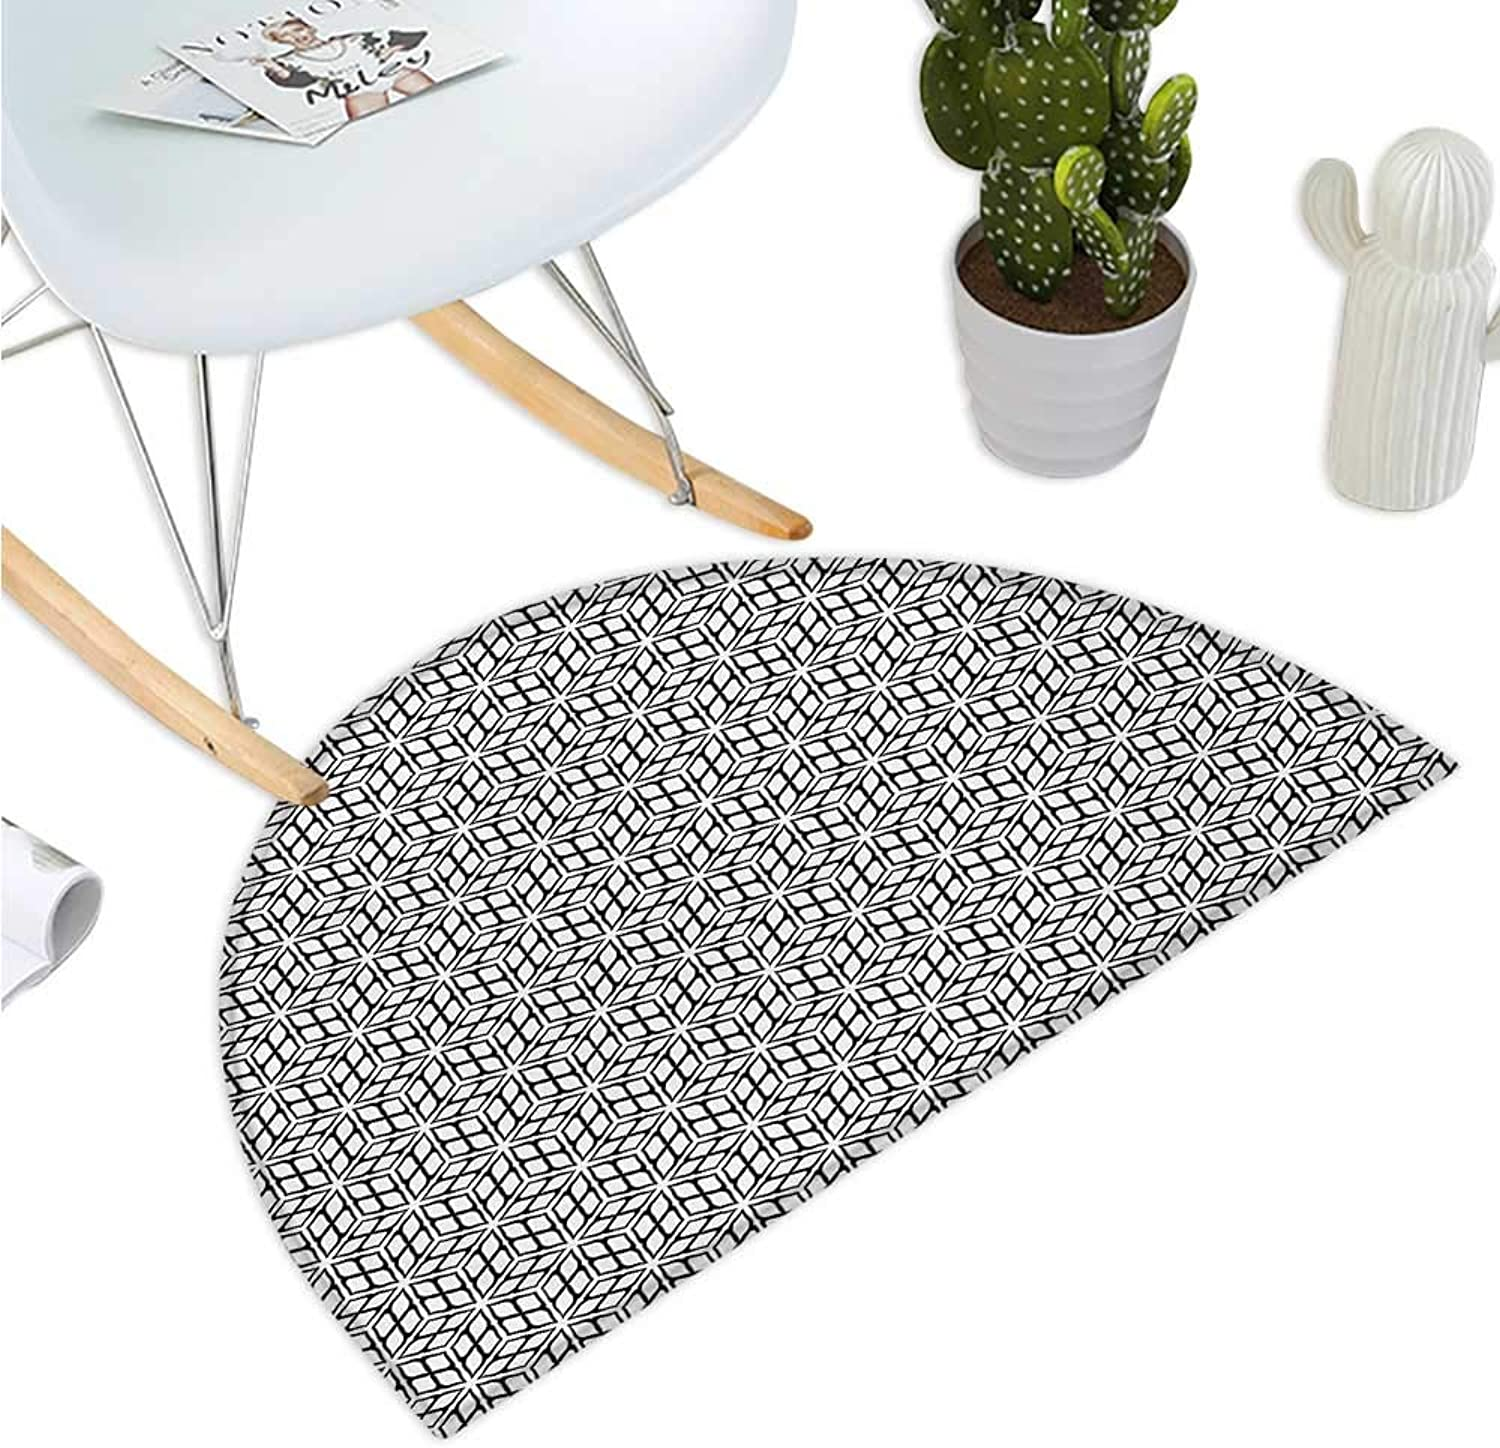 Black and White Half Round Door mats Symmetrical and Repetitive Pattern with Geometric Grid Motifs Monochrome Entry Door Mat H 43.3  xD 64.9  Black White